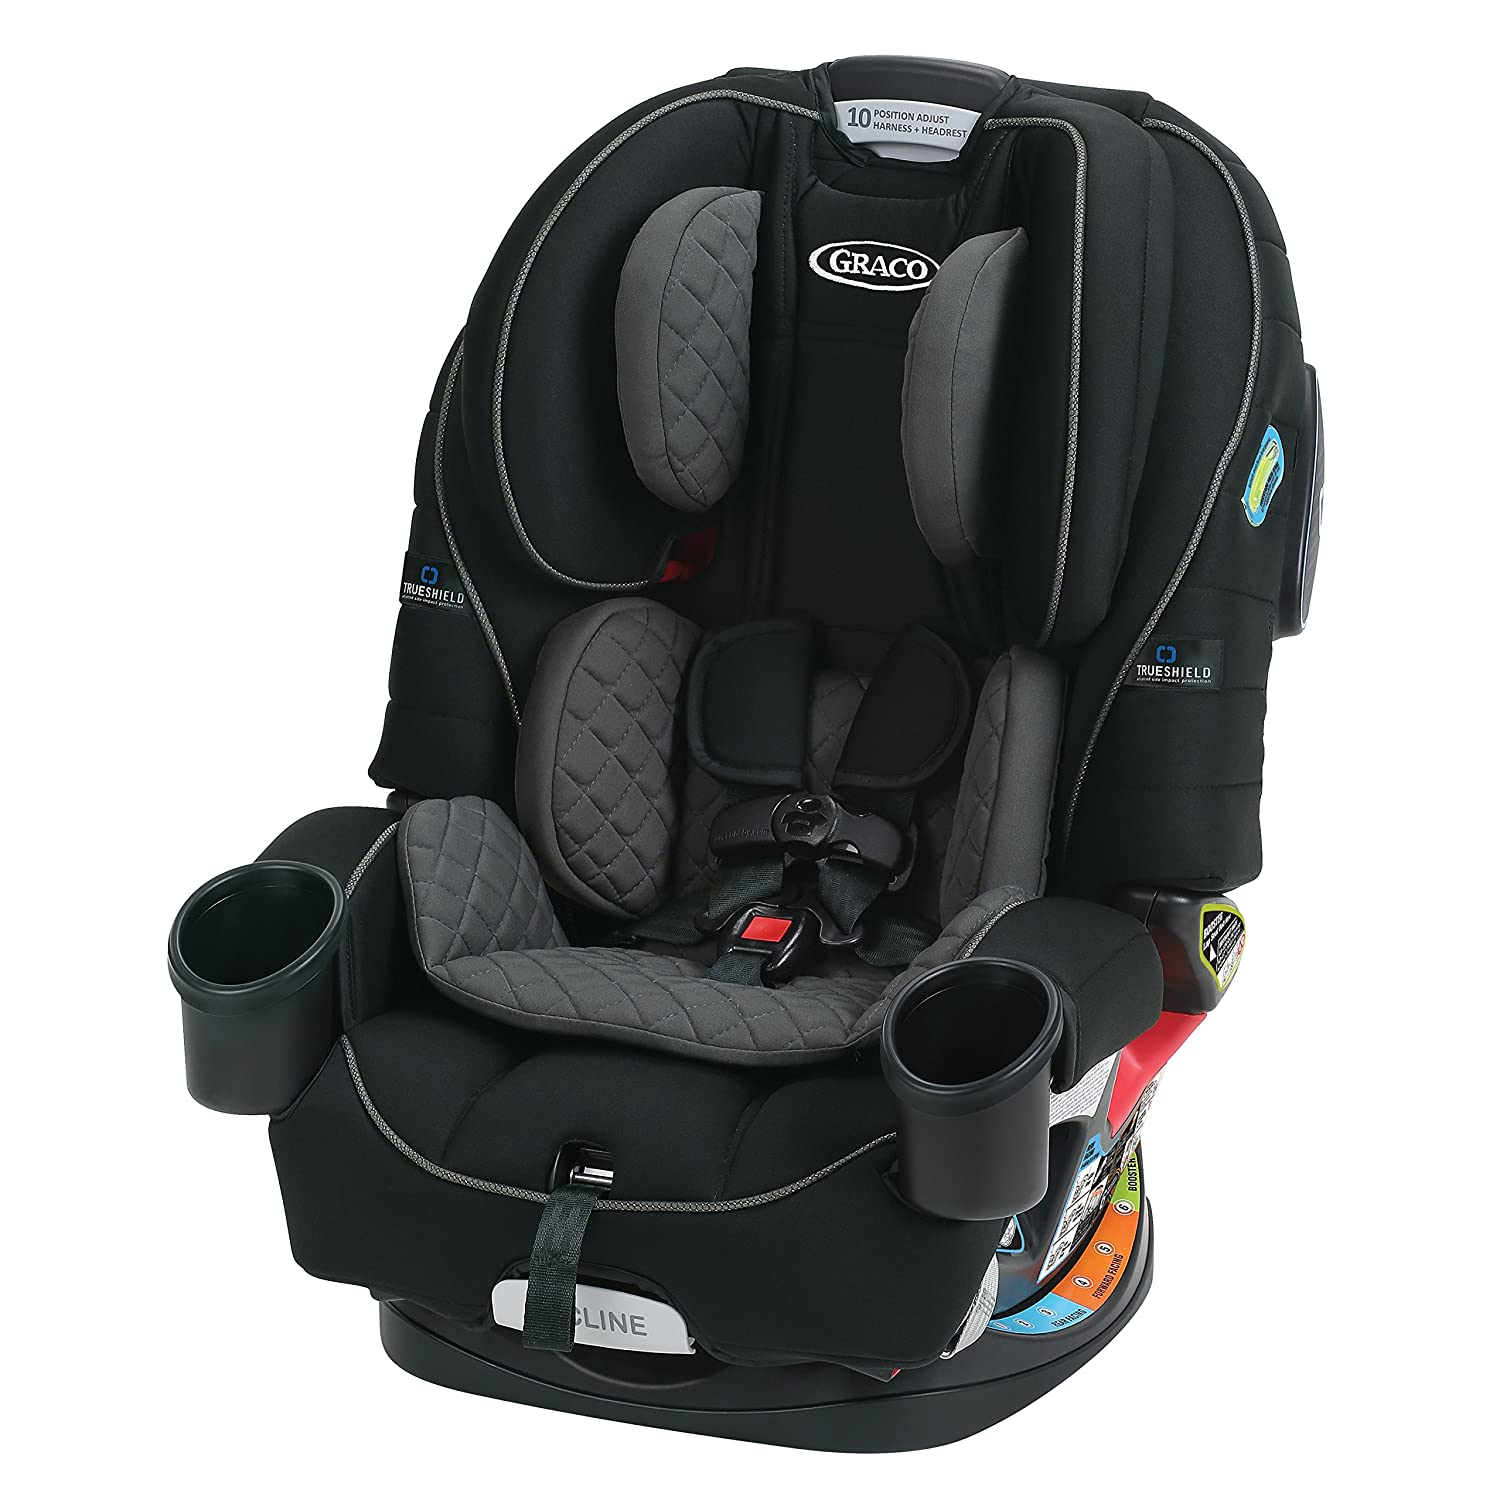 Top 9 Best Convertible Car Seat for Newborns 2020 3